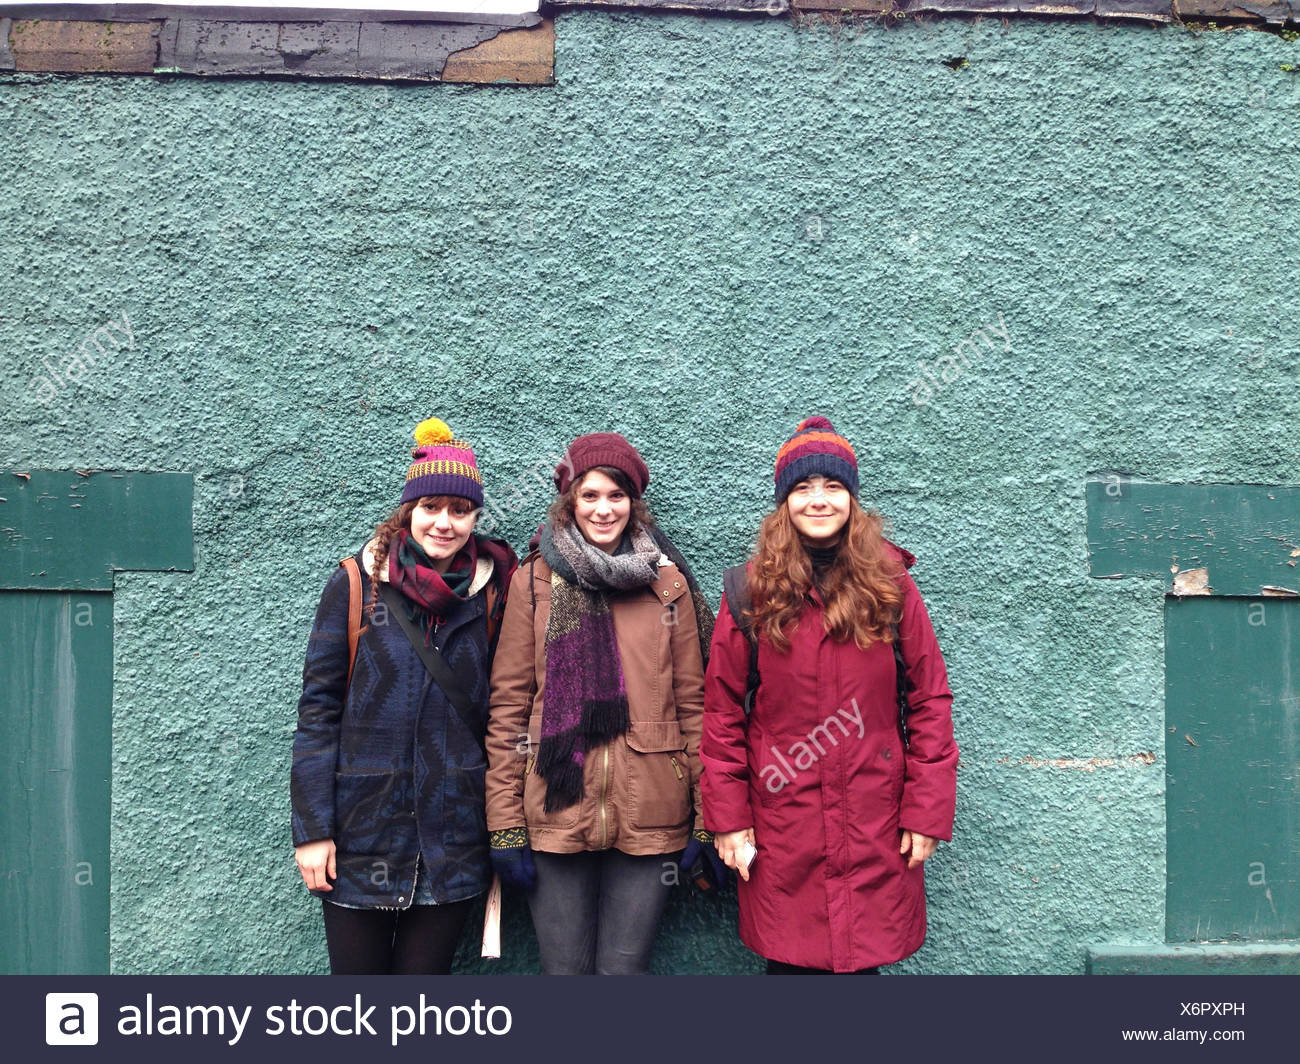 Three women standing against a wall - Stock Image